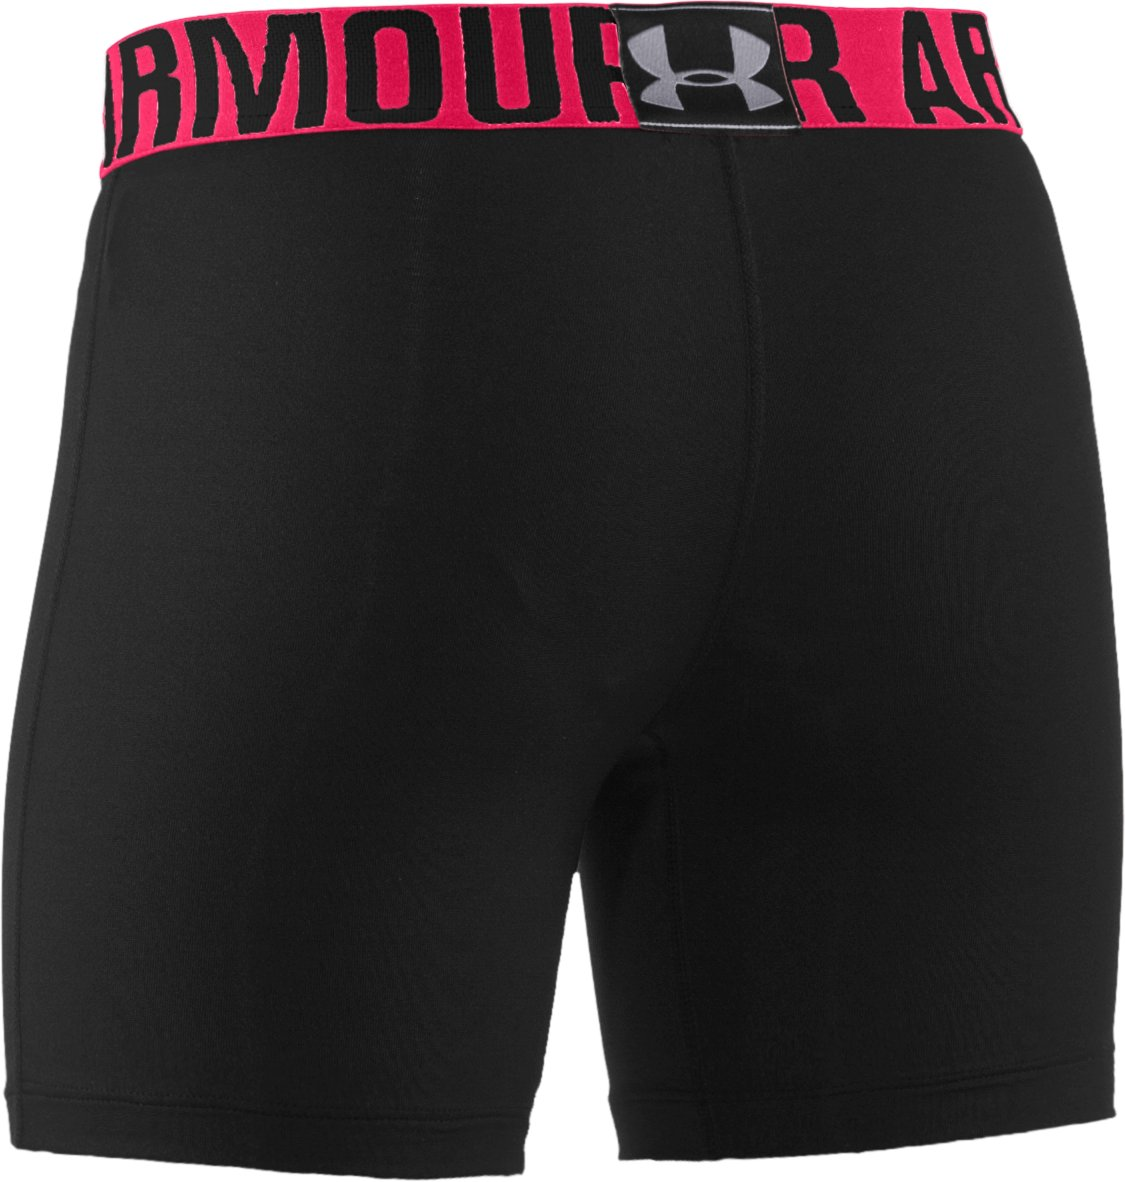 "Girls' UA Sonic 5"" Fitted Shorts, Black , undefined"